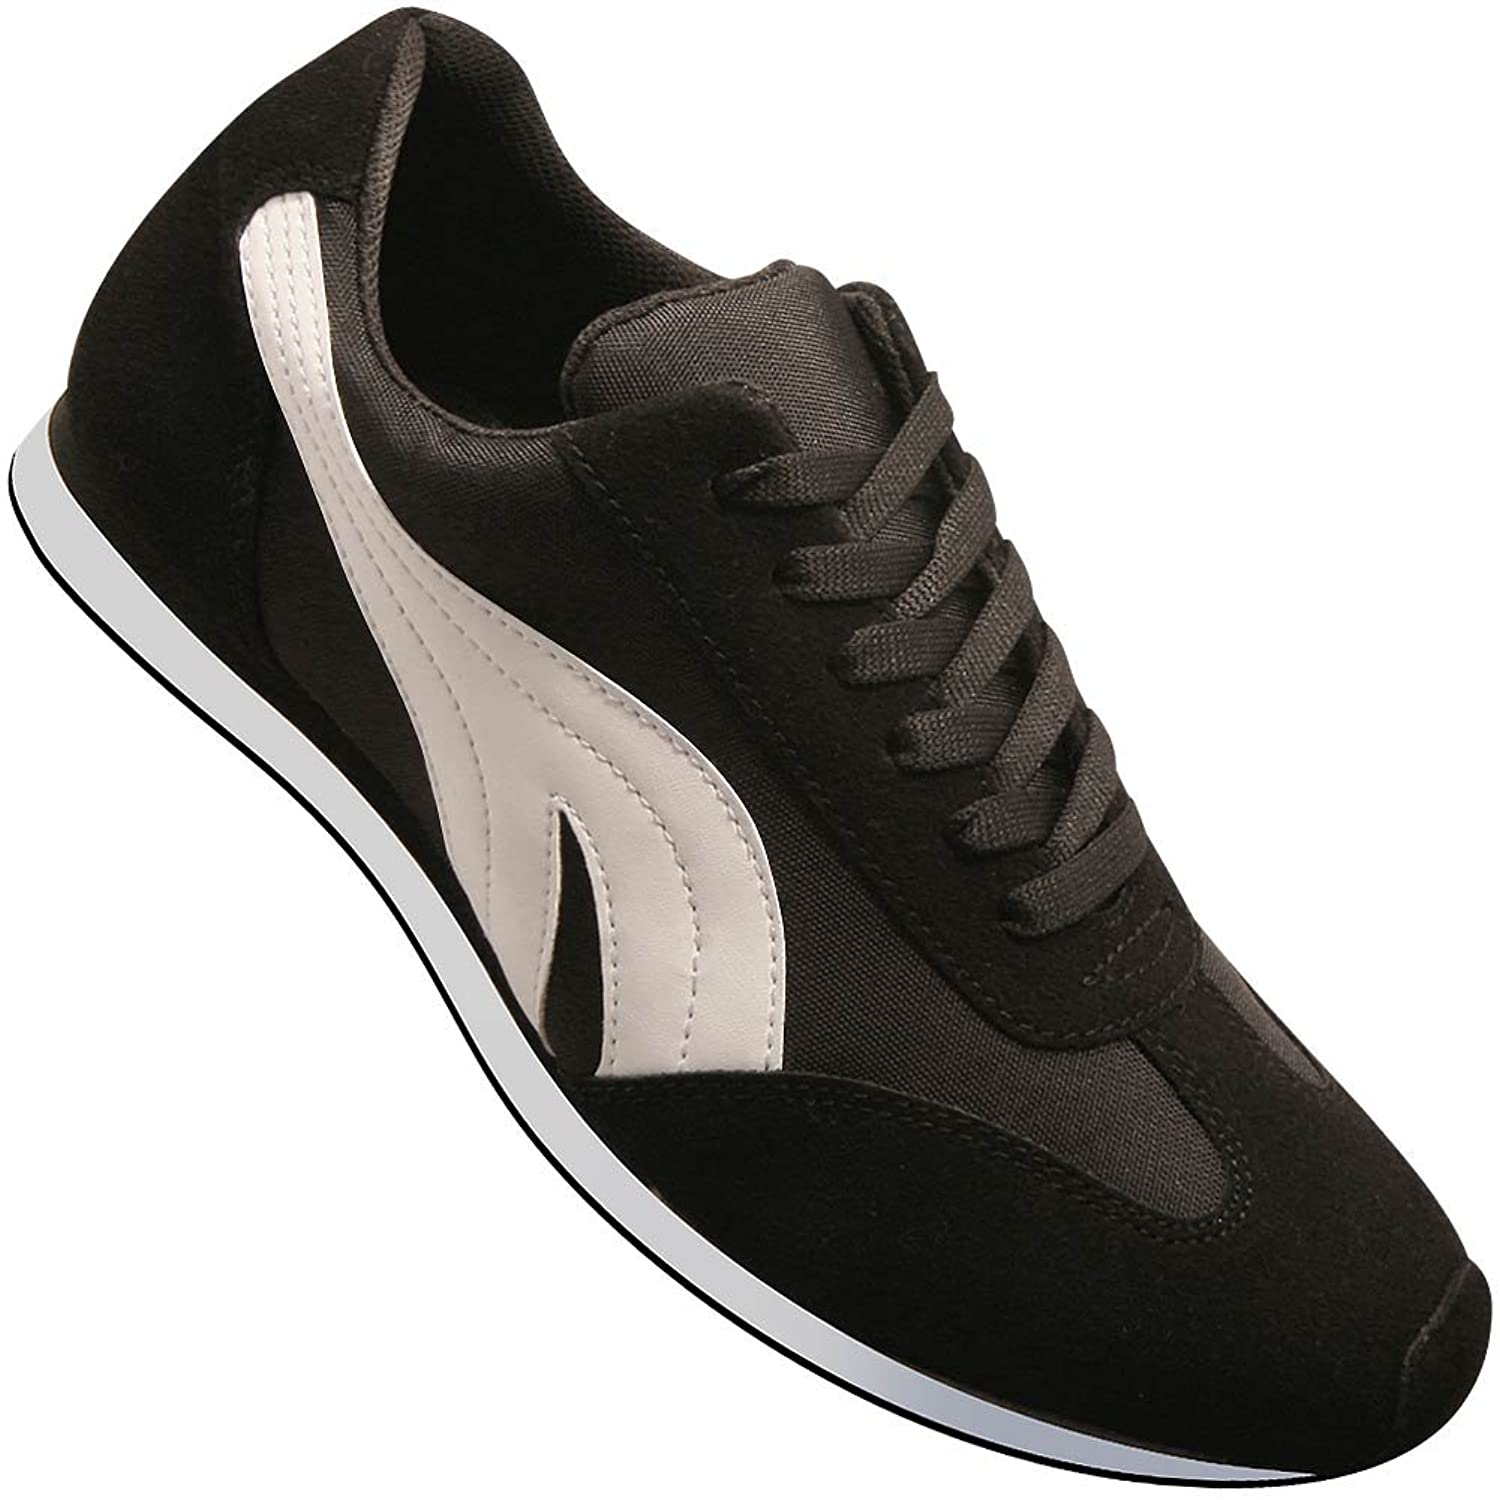 Retro Style Dance Shoes Aris Allen Mens Retro Runner Dance Sneaker in Black and White $59.95 AT vintagedancer.com